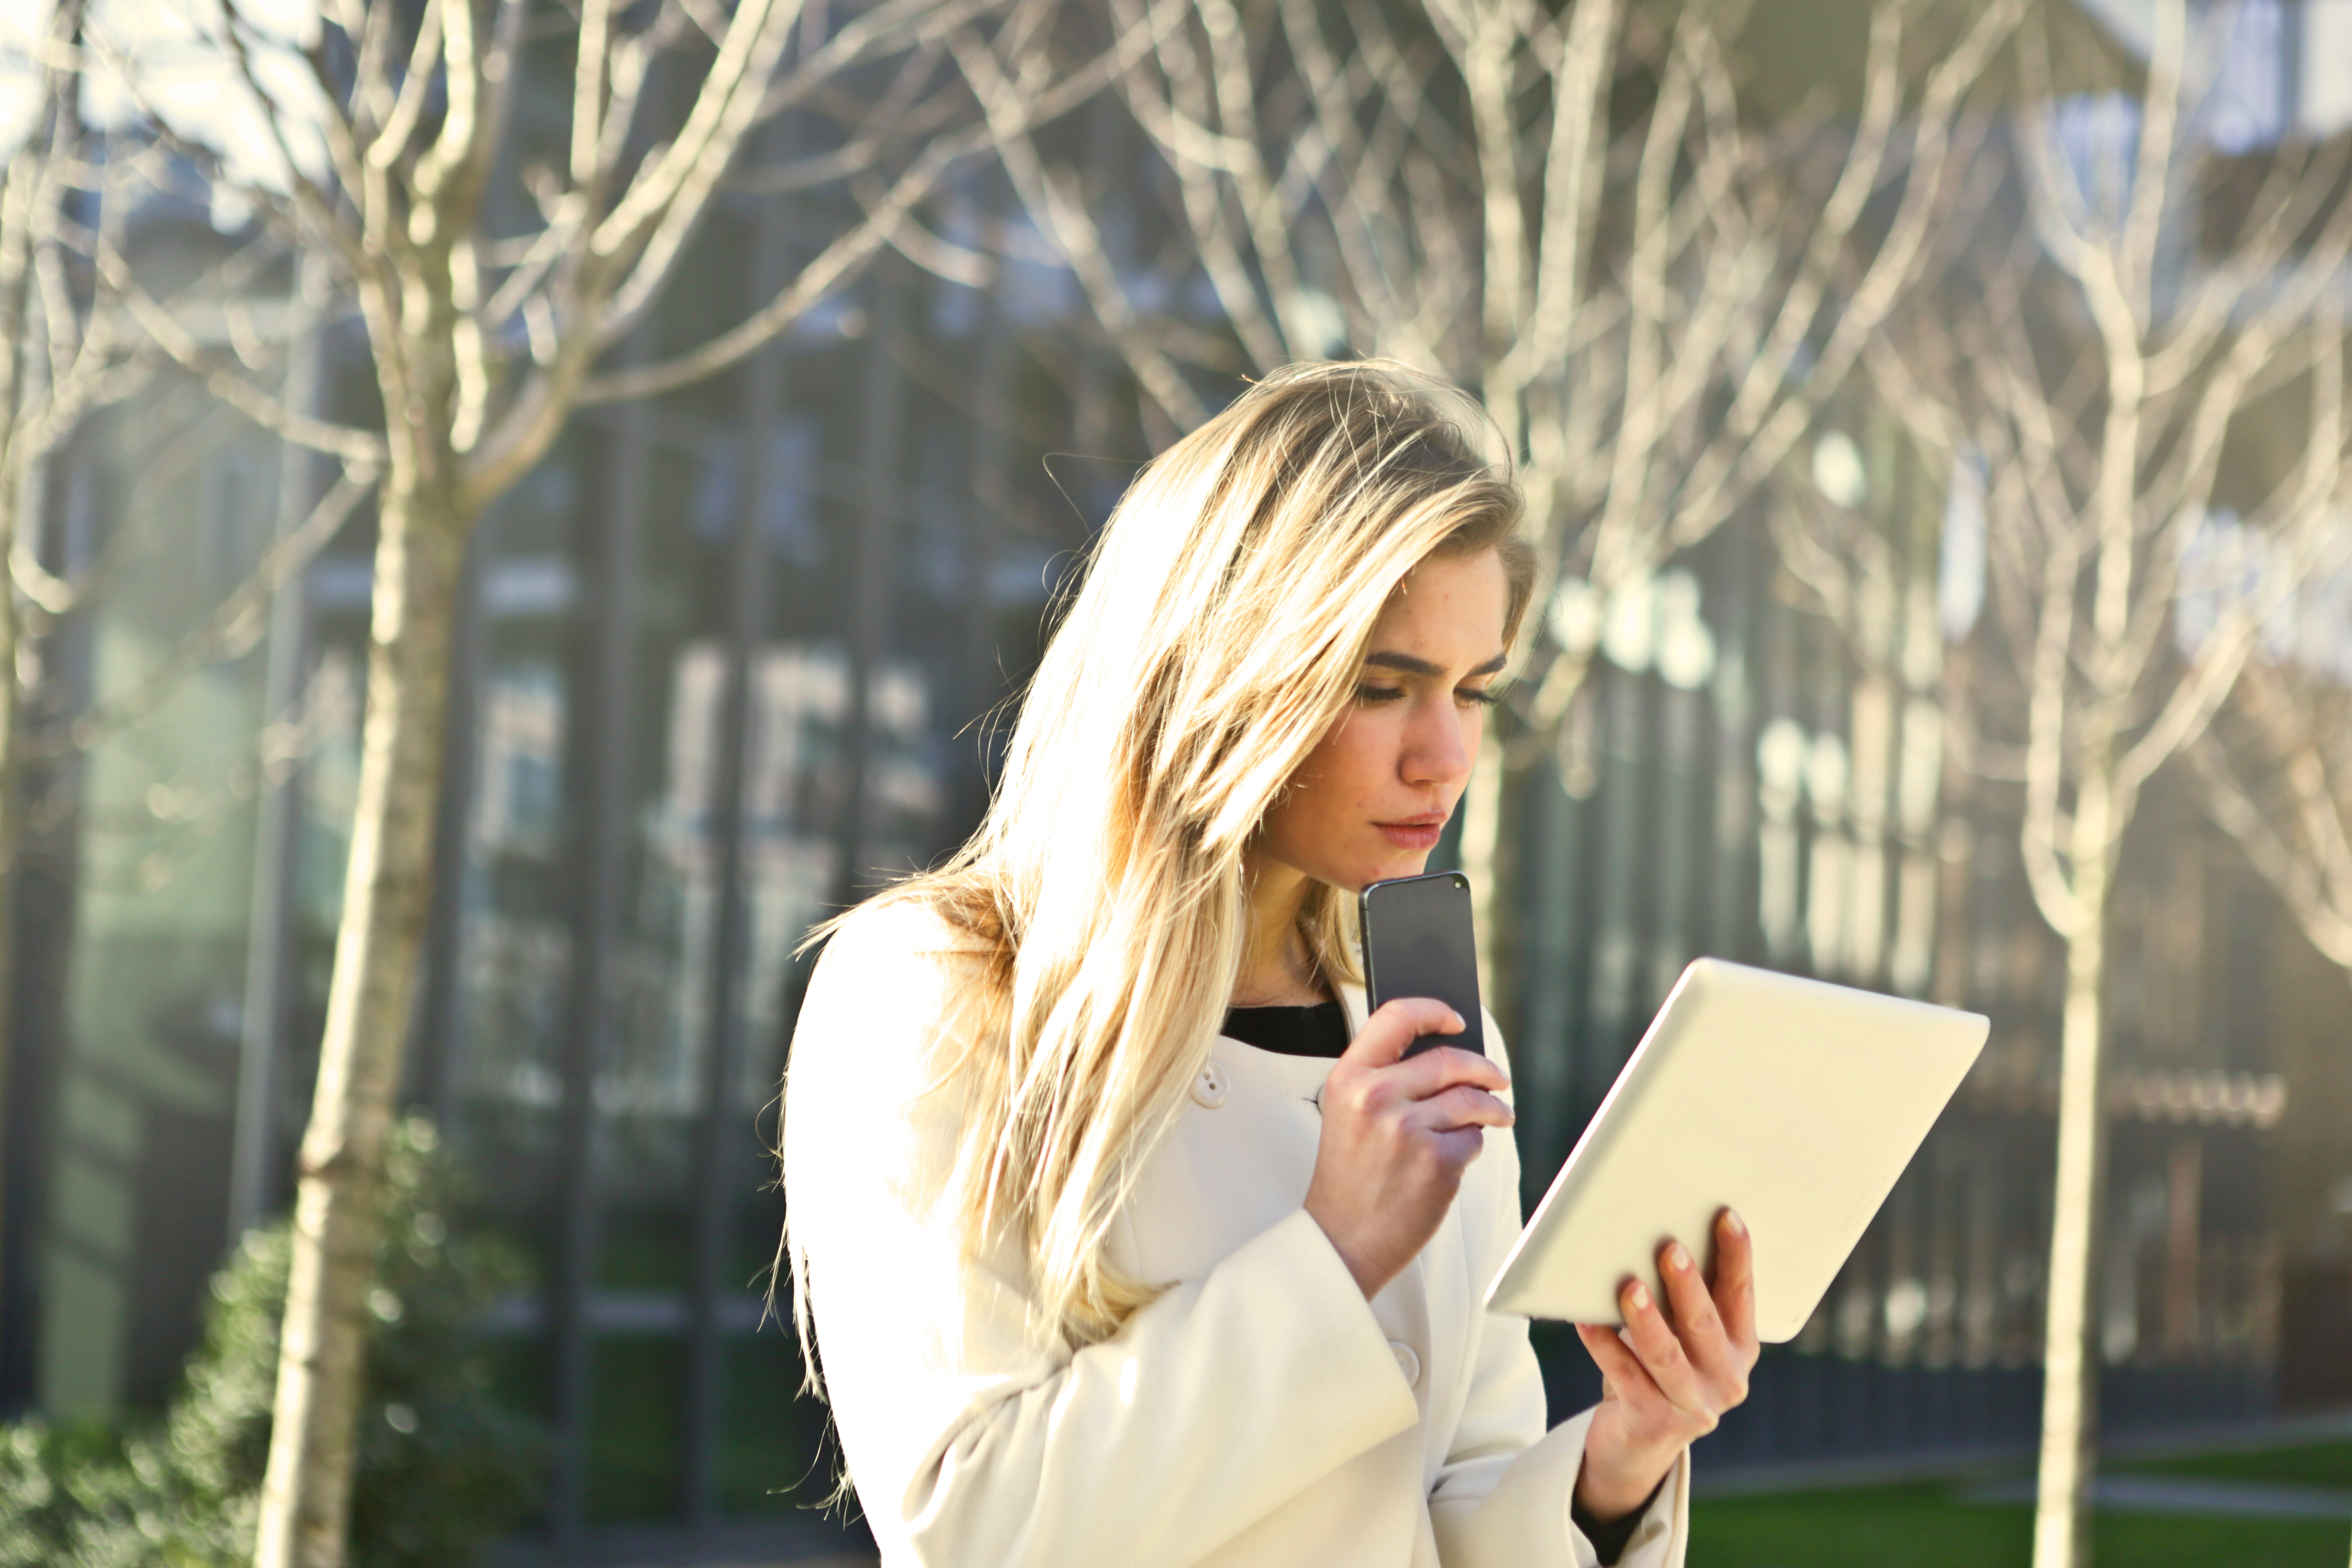 Brown-haired Woman Holding a White Wireless Device, Adult, Park, Work, Woman, HQ Photo